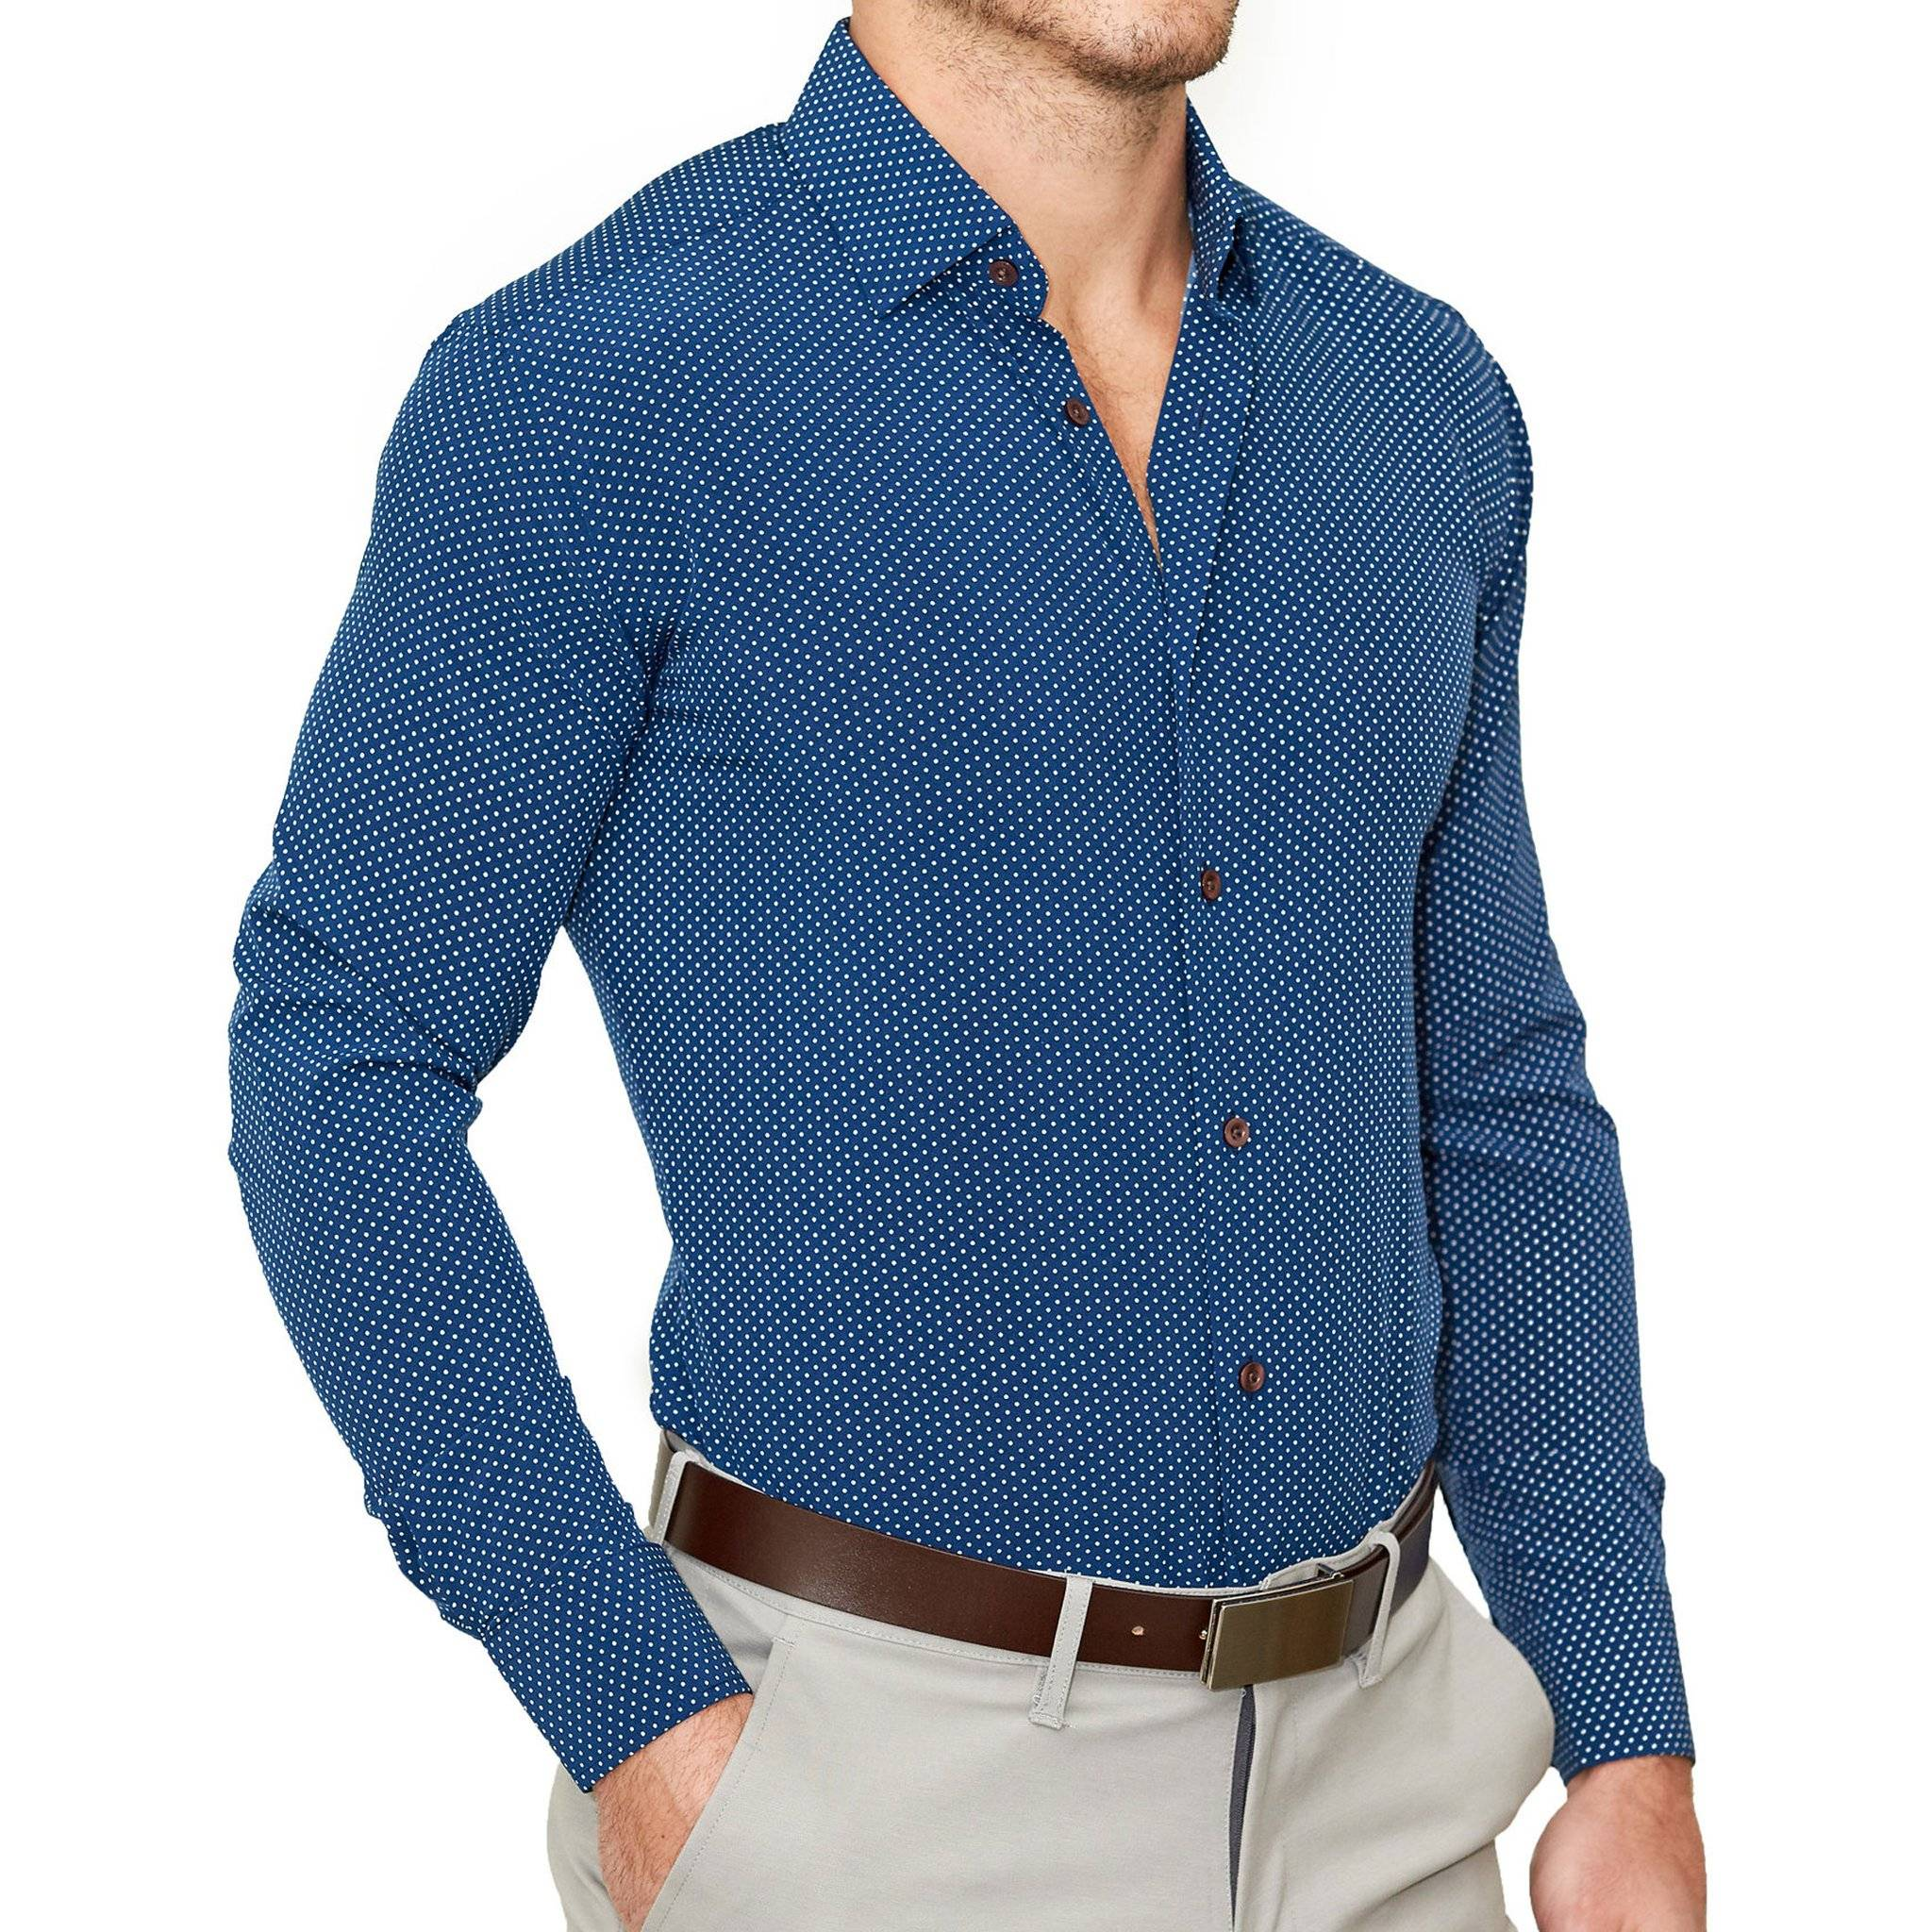 477a655ff4e State and Liberty Athletic Fit Dress Shirts